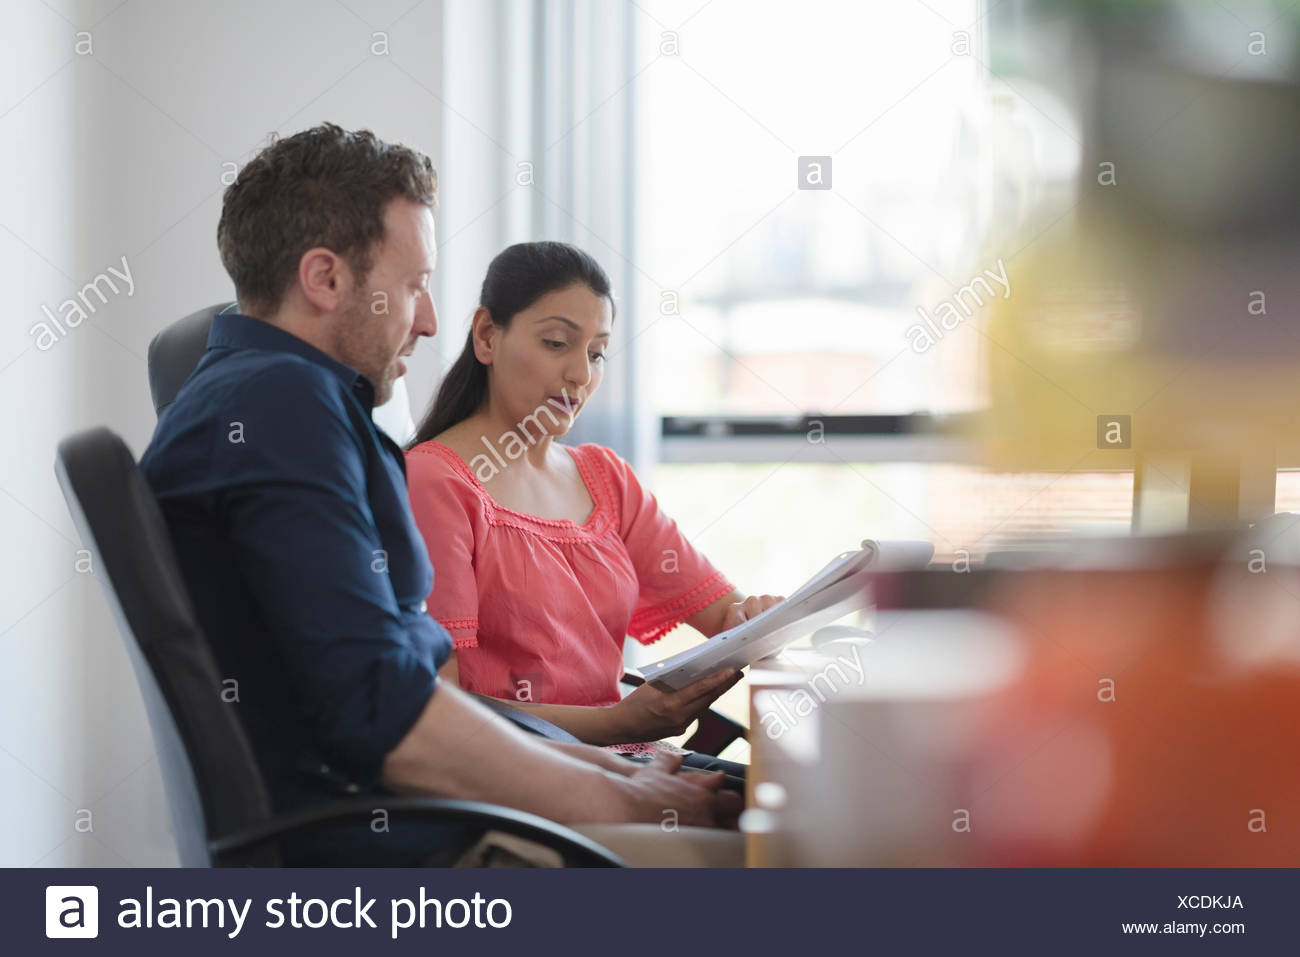 Colleagues in discussion at office desk - Stock Image